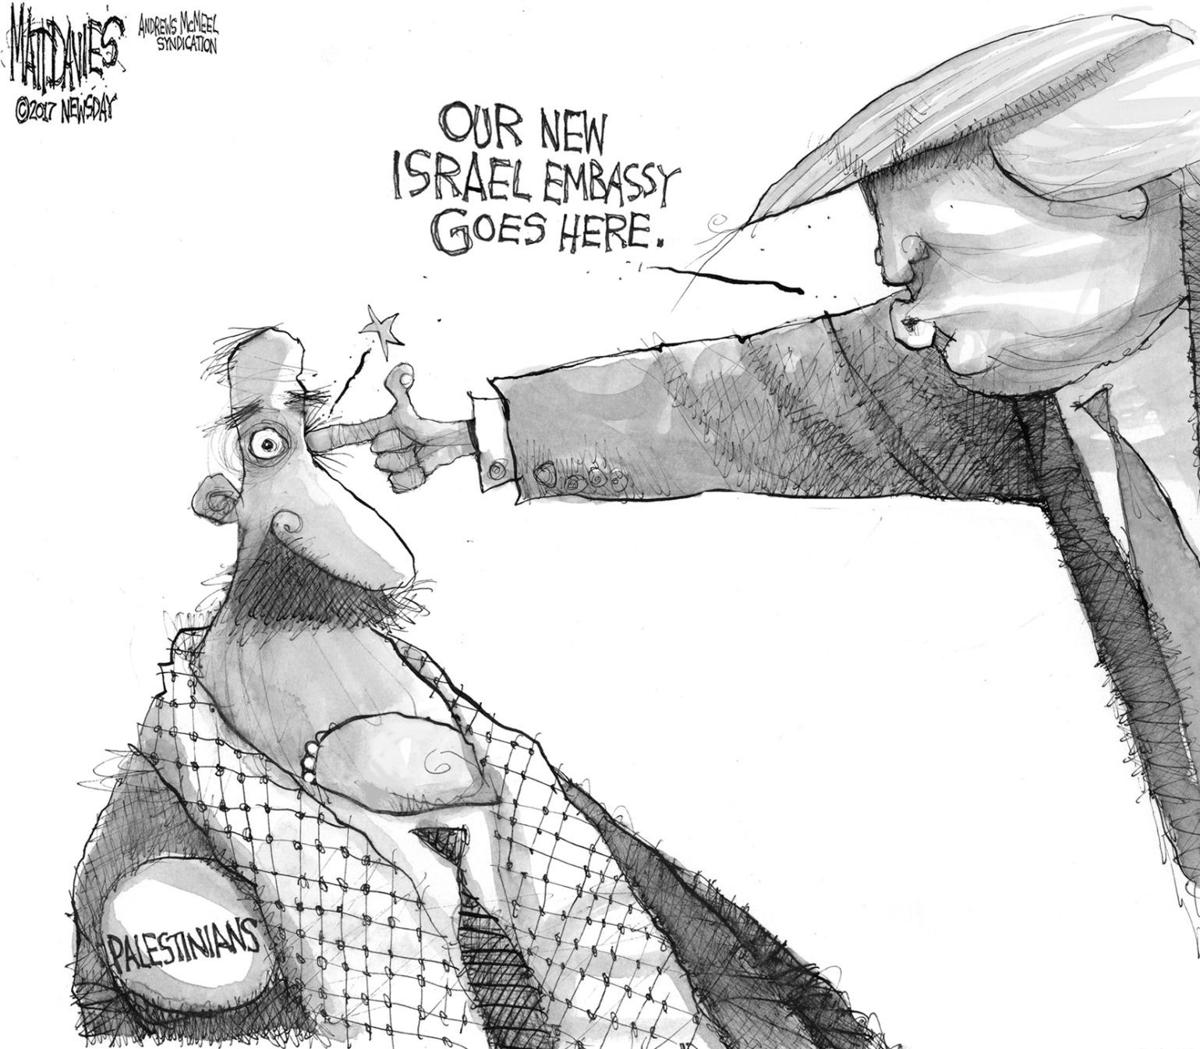 New Israel embassy goes here ...